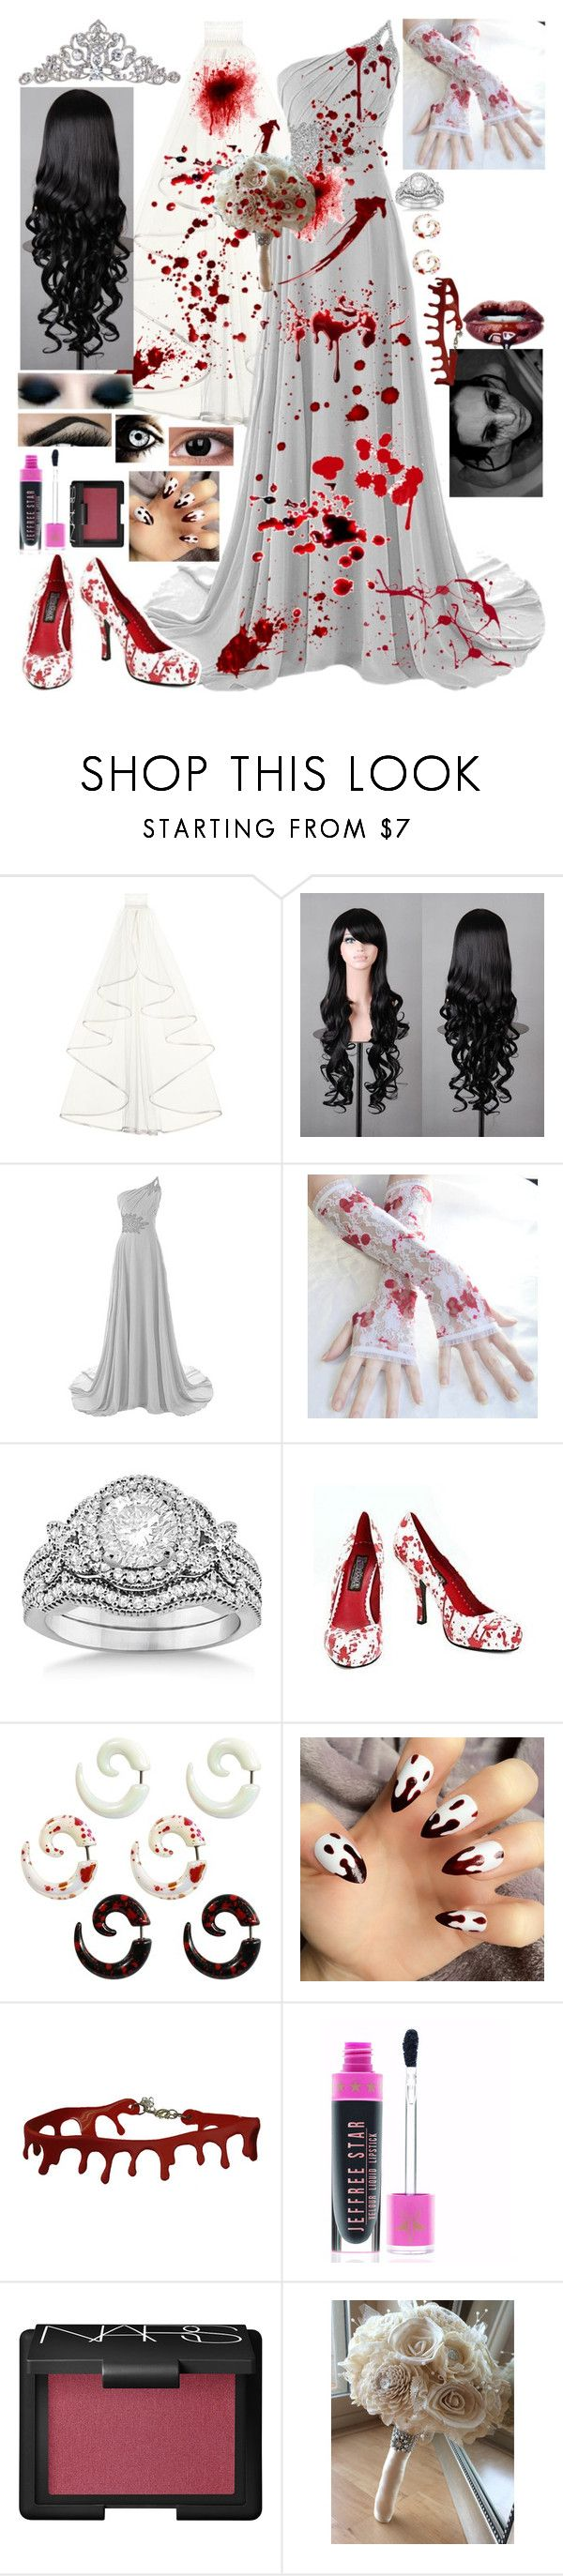 """""""Halloween Costume Idea: Zombie Bride"""" by i-am-the-one-and-only ❤ liked on Polyvore featuring TIARA, Allurez, NARS Cosmetics and Sola"""